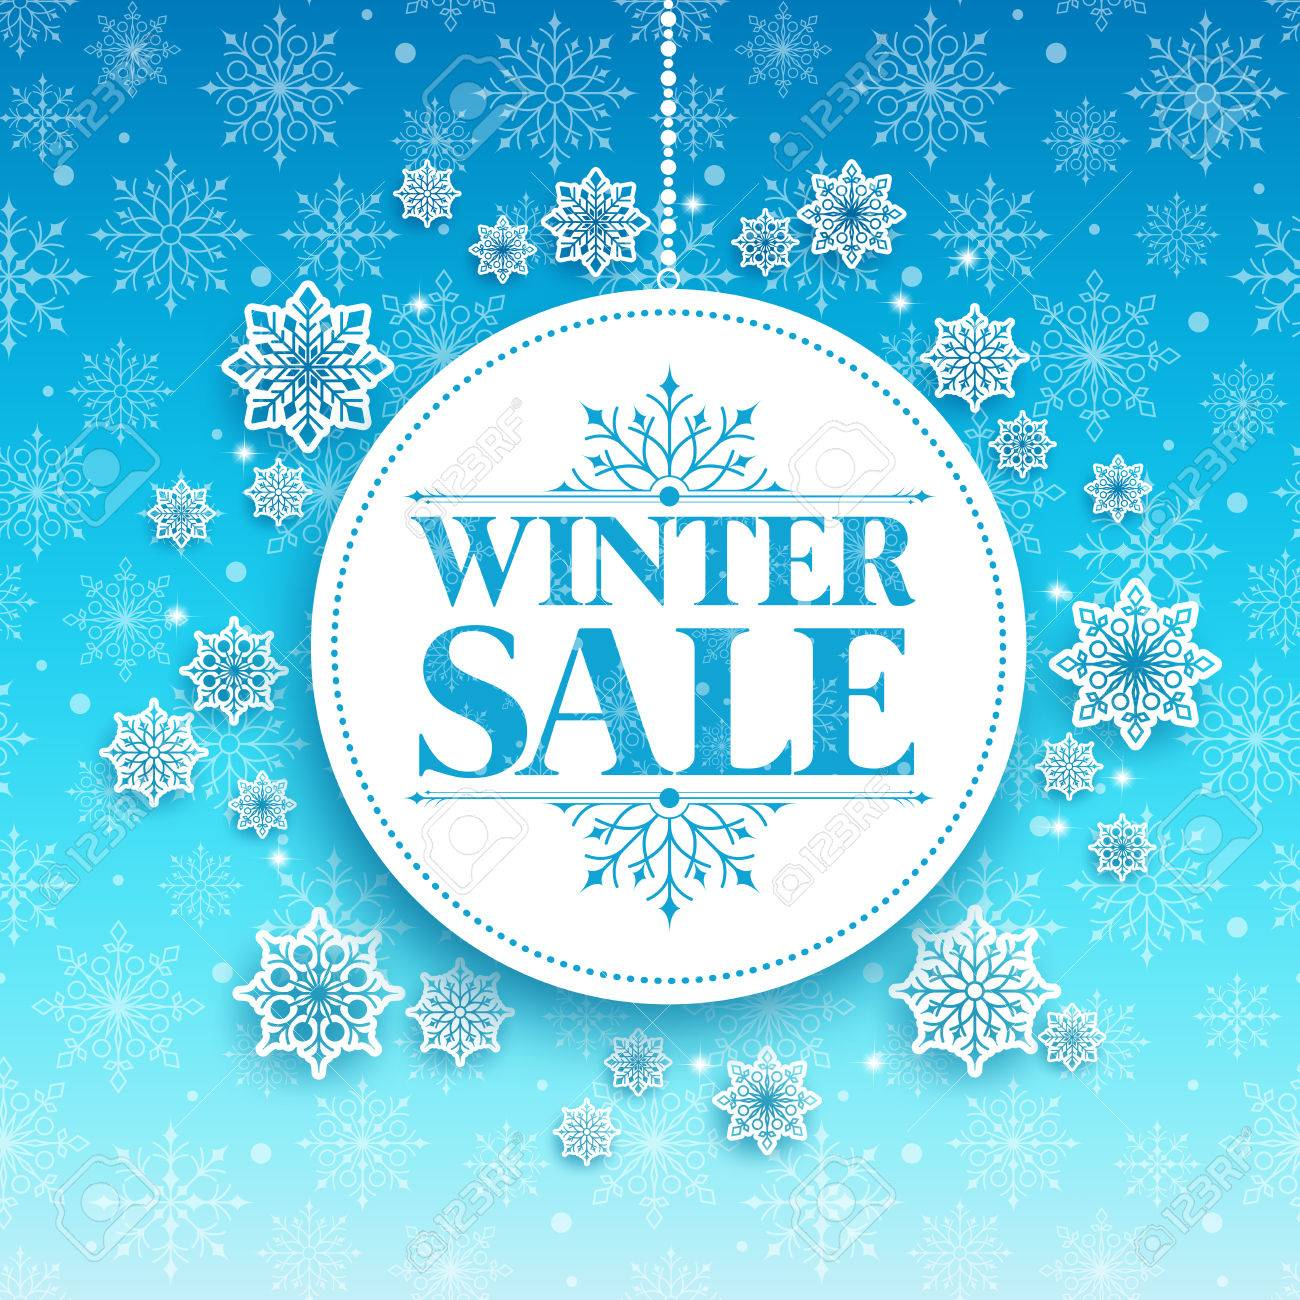 Winter Sale Text in White Space with Snow Flakes Hanging in Blue Pattern Background. Vector Illustration - 47417563